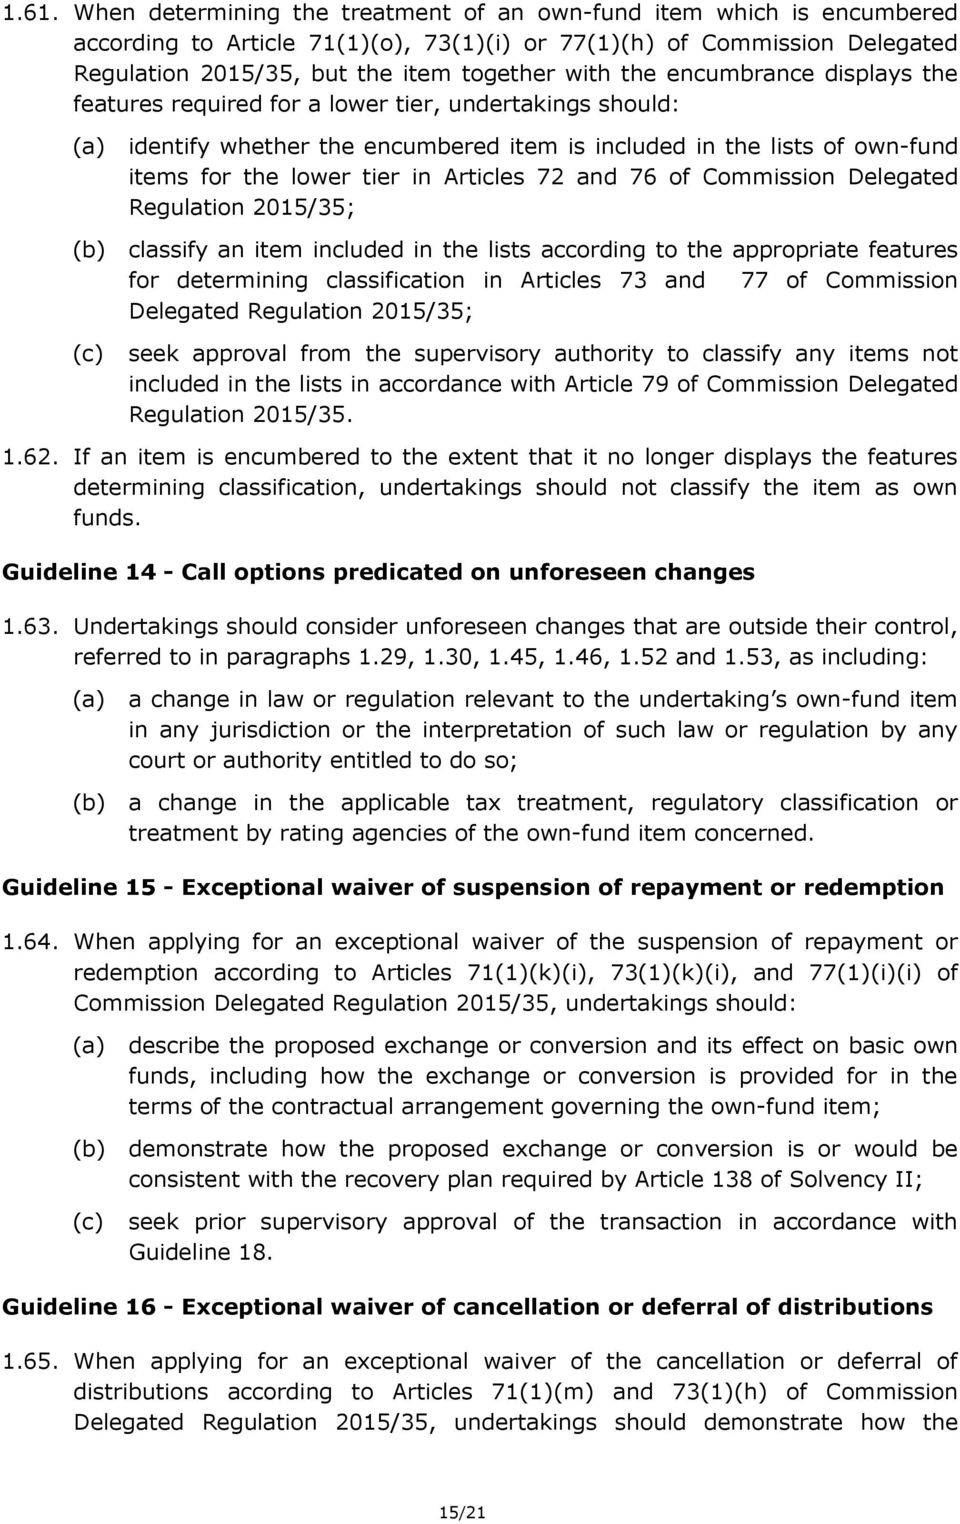 and 76 of Commission Delegated Regulation 2015/35; classify an item included in the lists according to the appropriate features for determining classification in Articles 73 and 77 of Commission